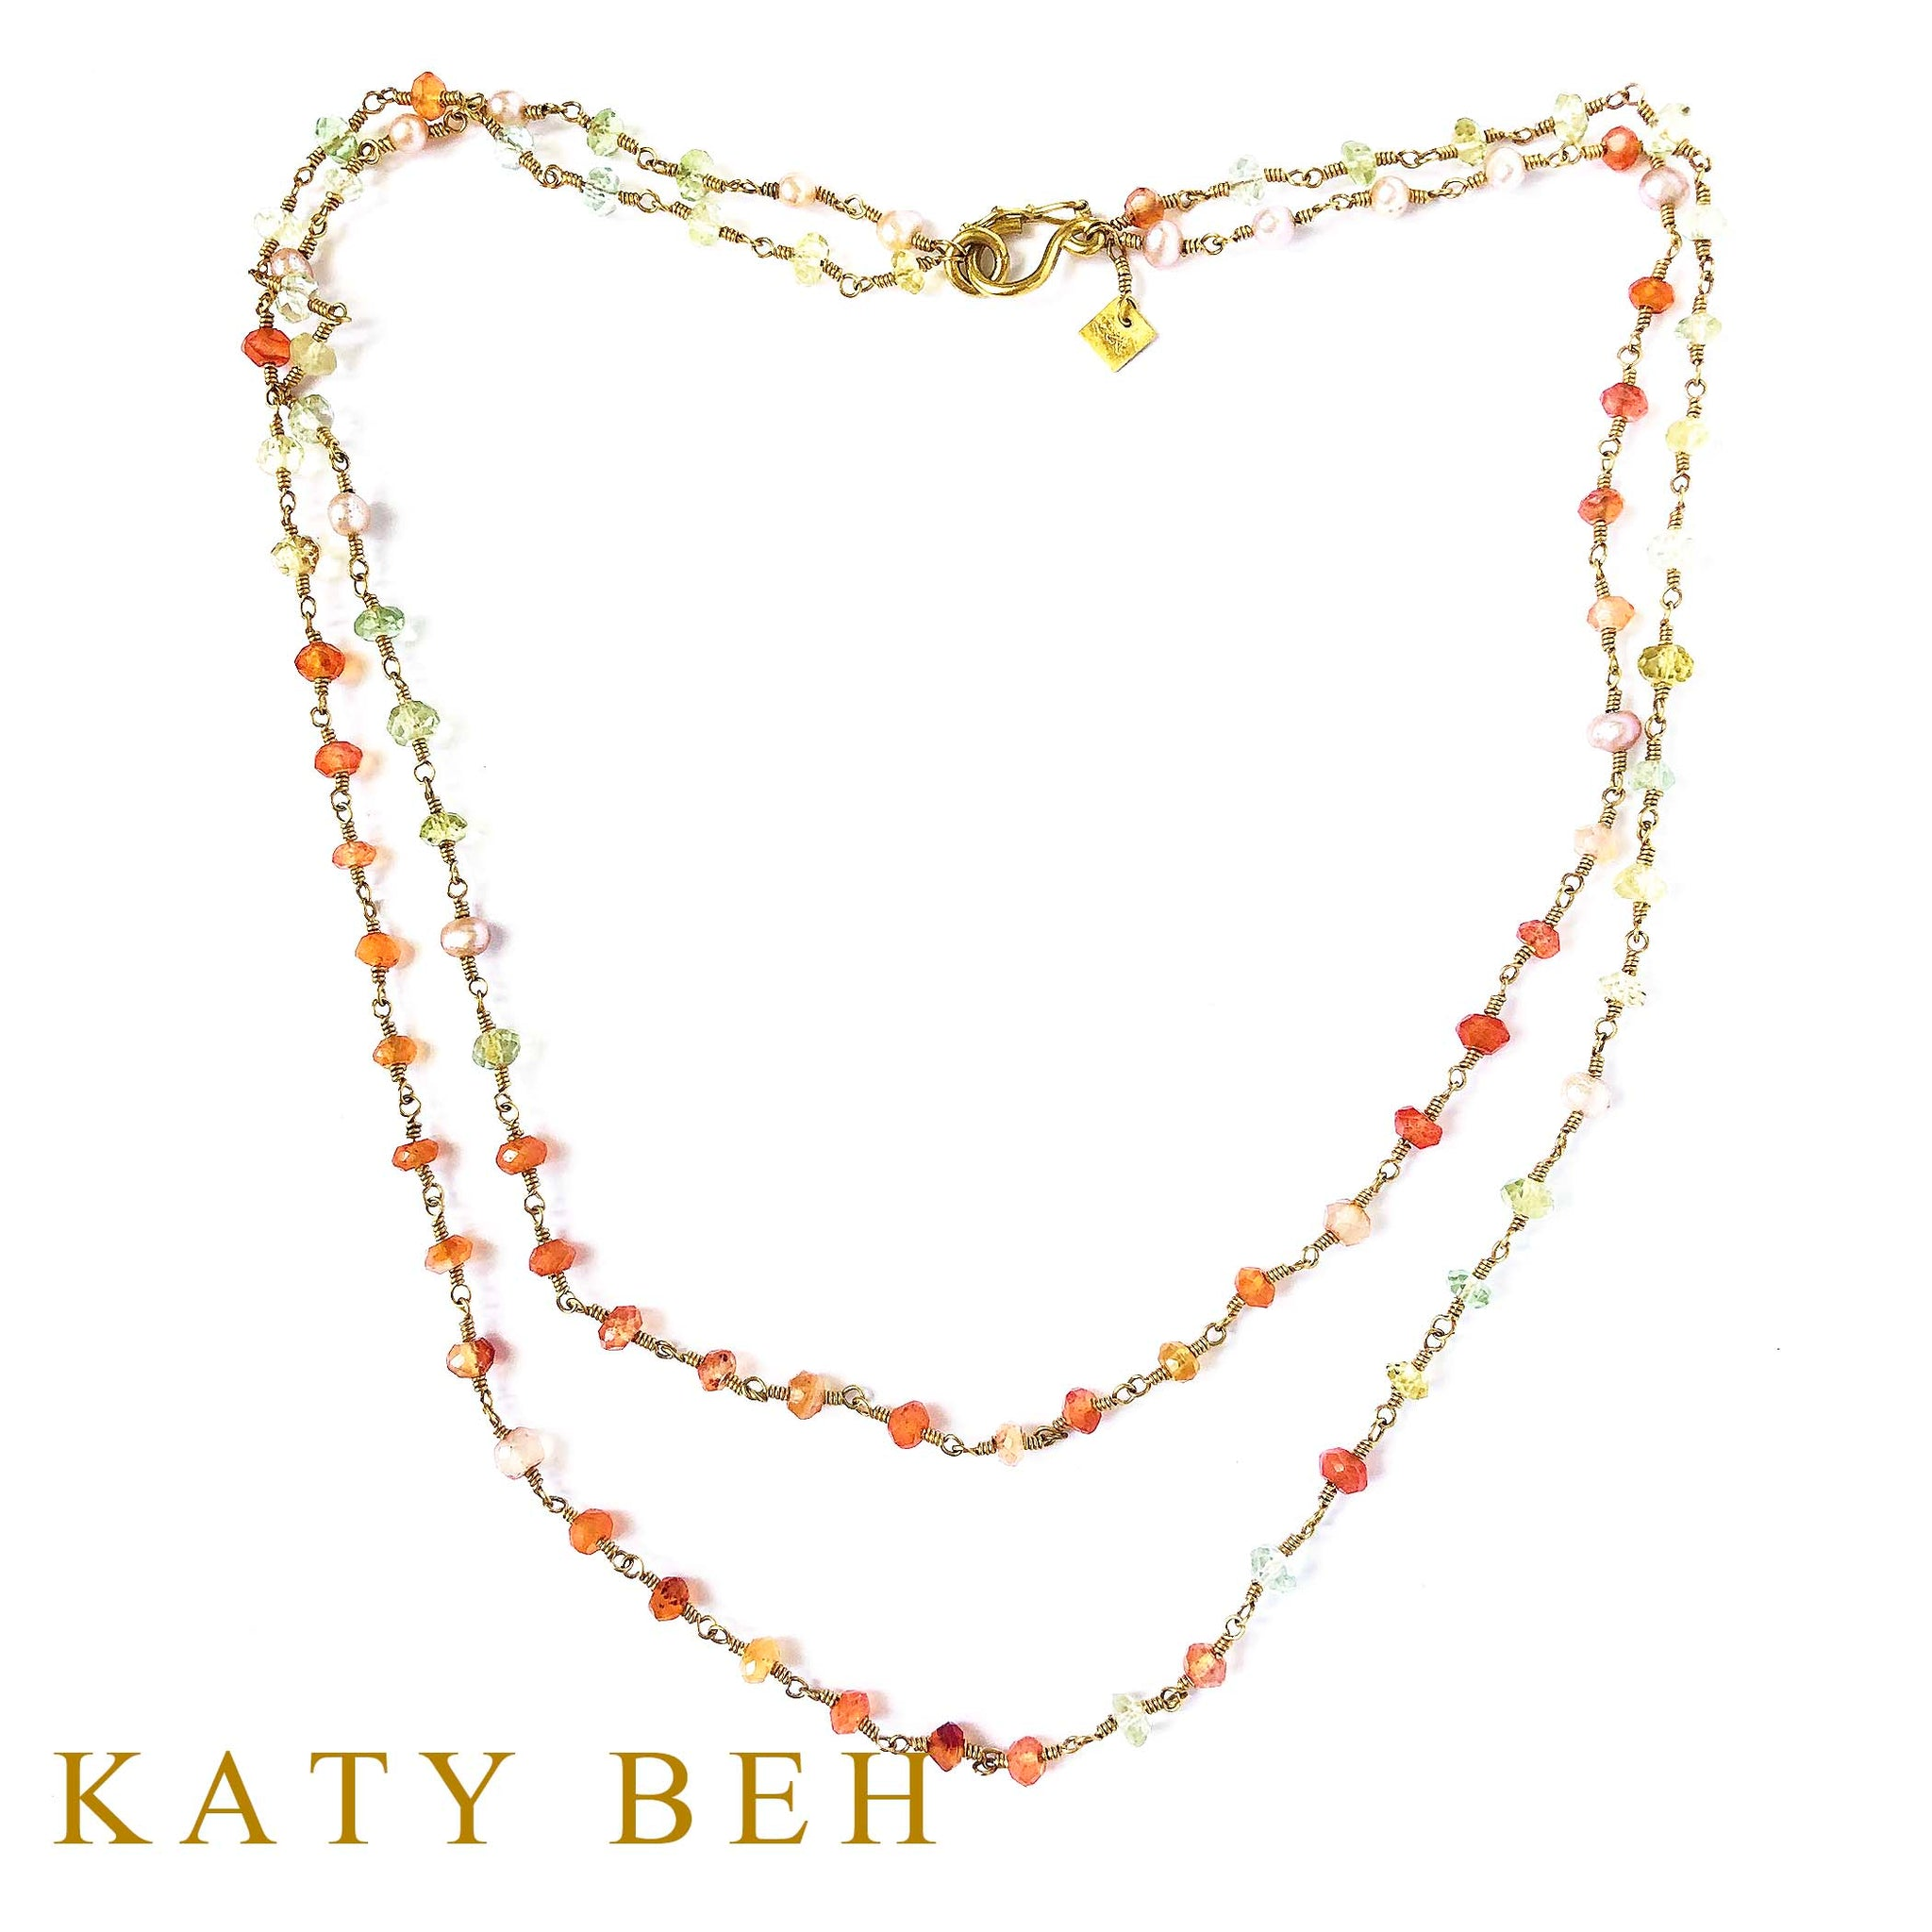 Erykah Carnelian, Beryl and Pearl Necklace